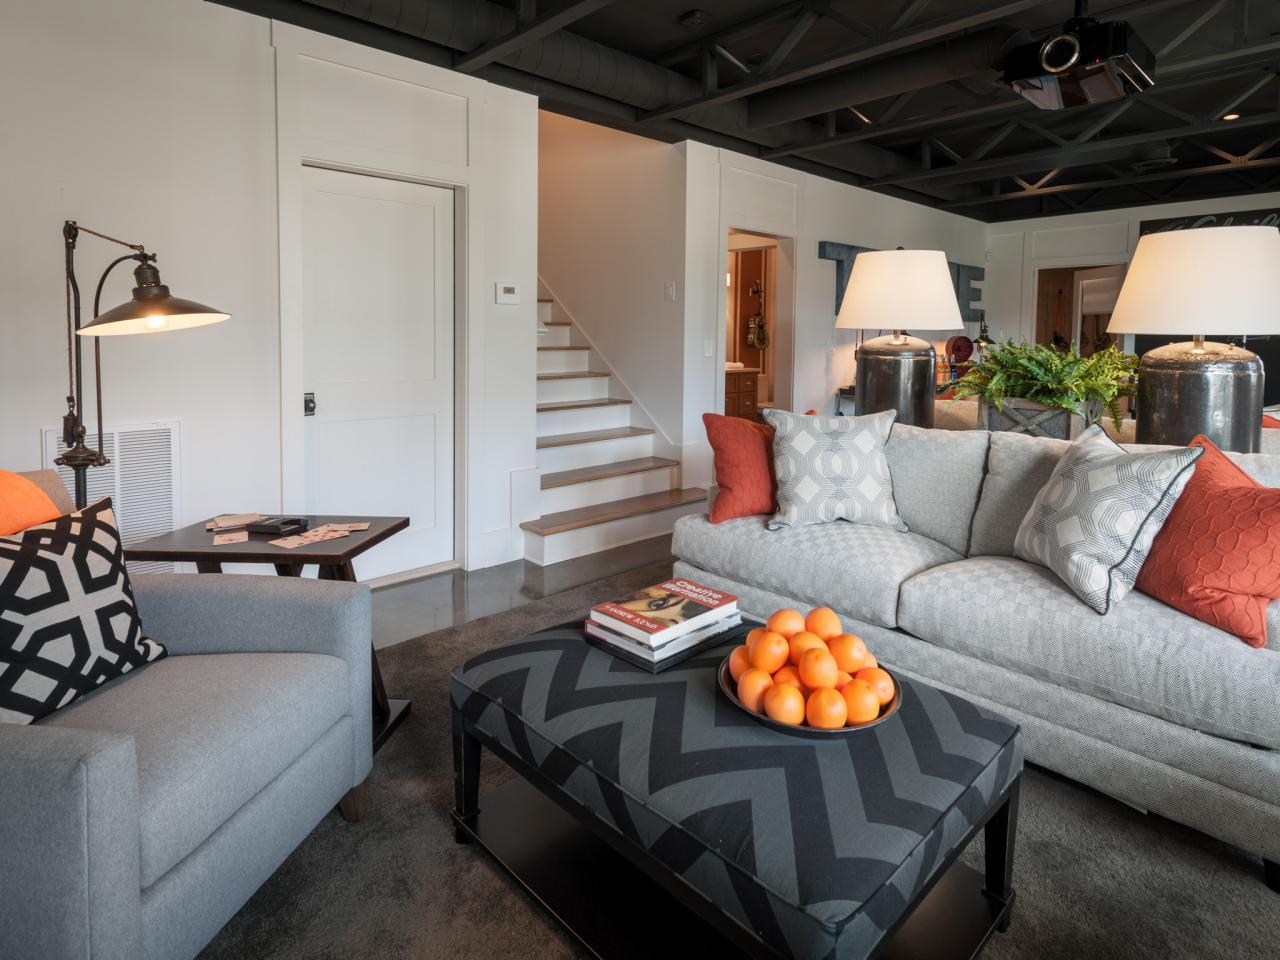 How To Remodel A Basement On A Budget Furniture